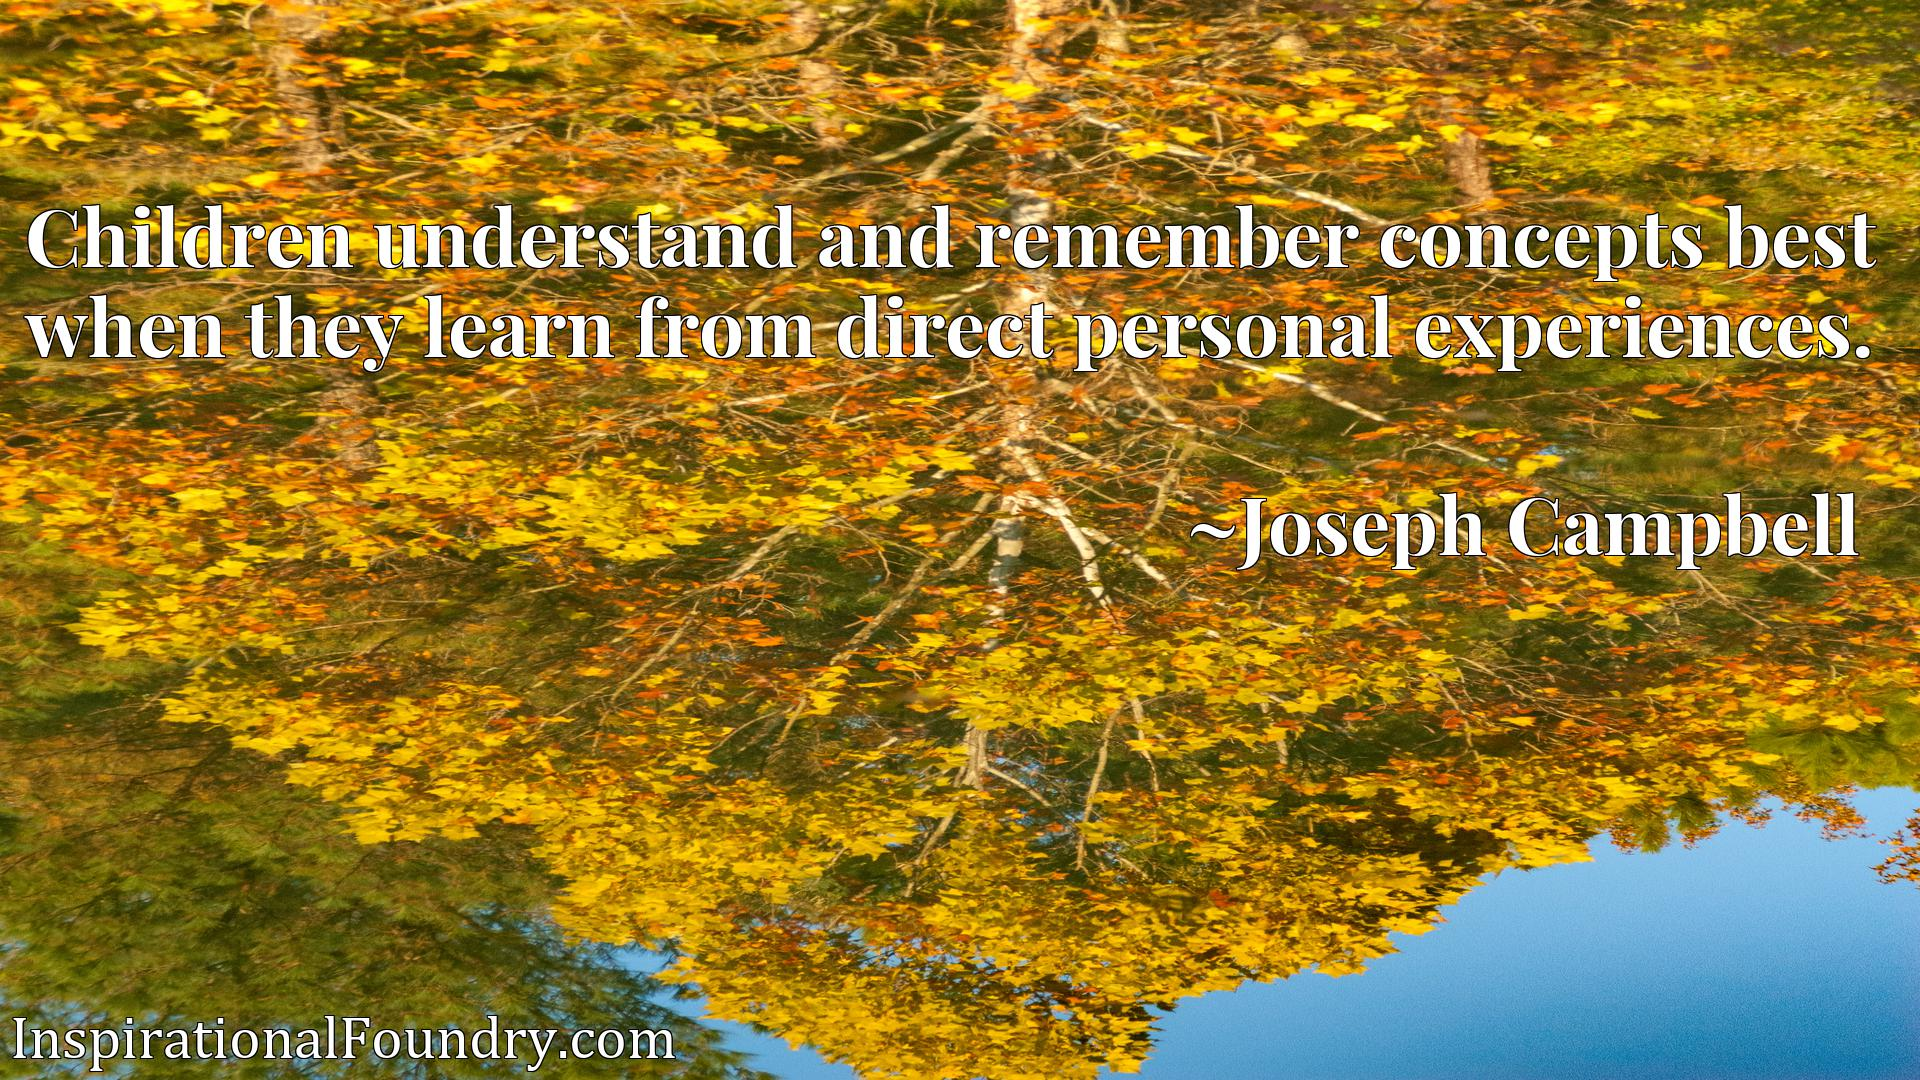 Children understand and remember concepts best when they learn from direct personal experiences.